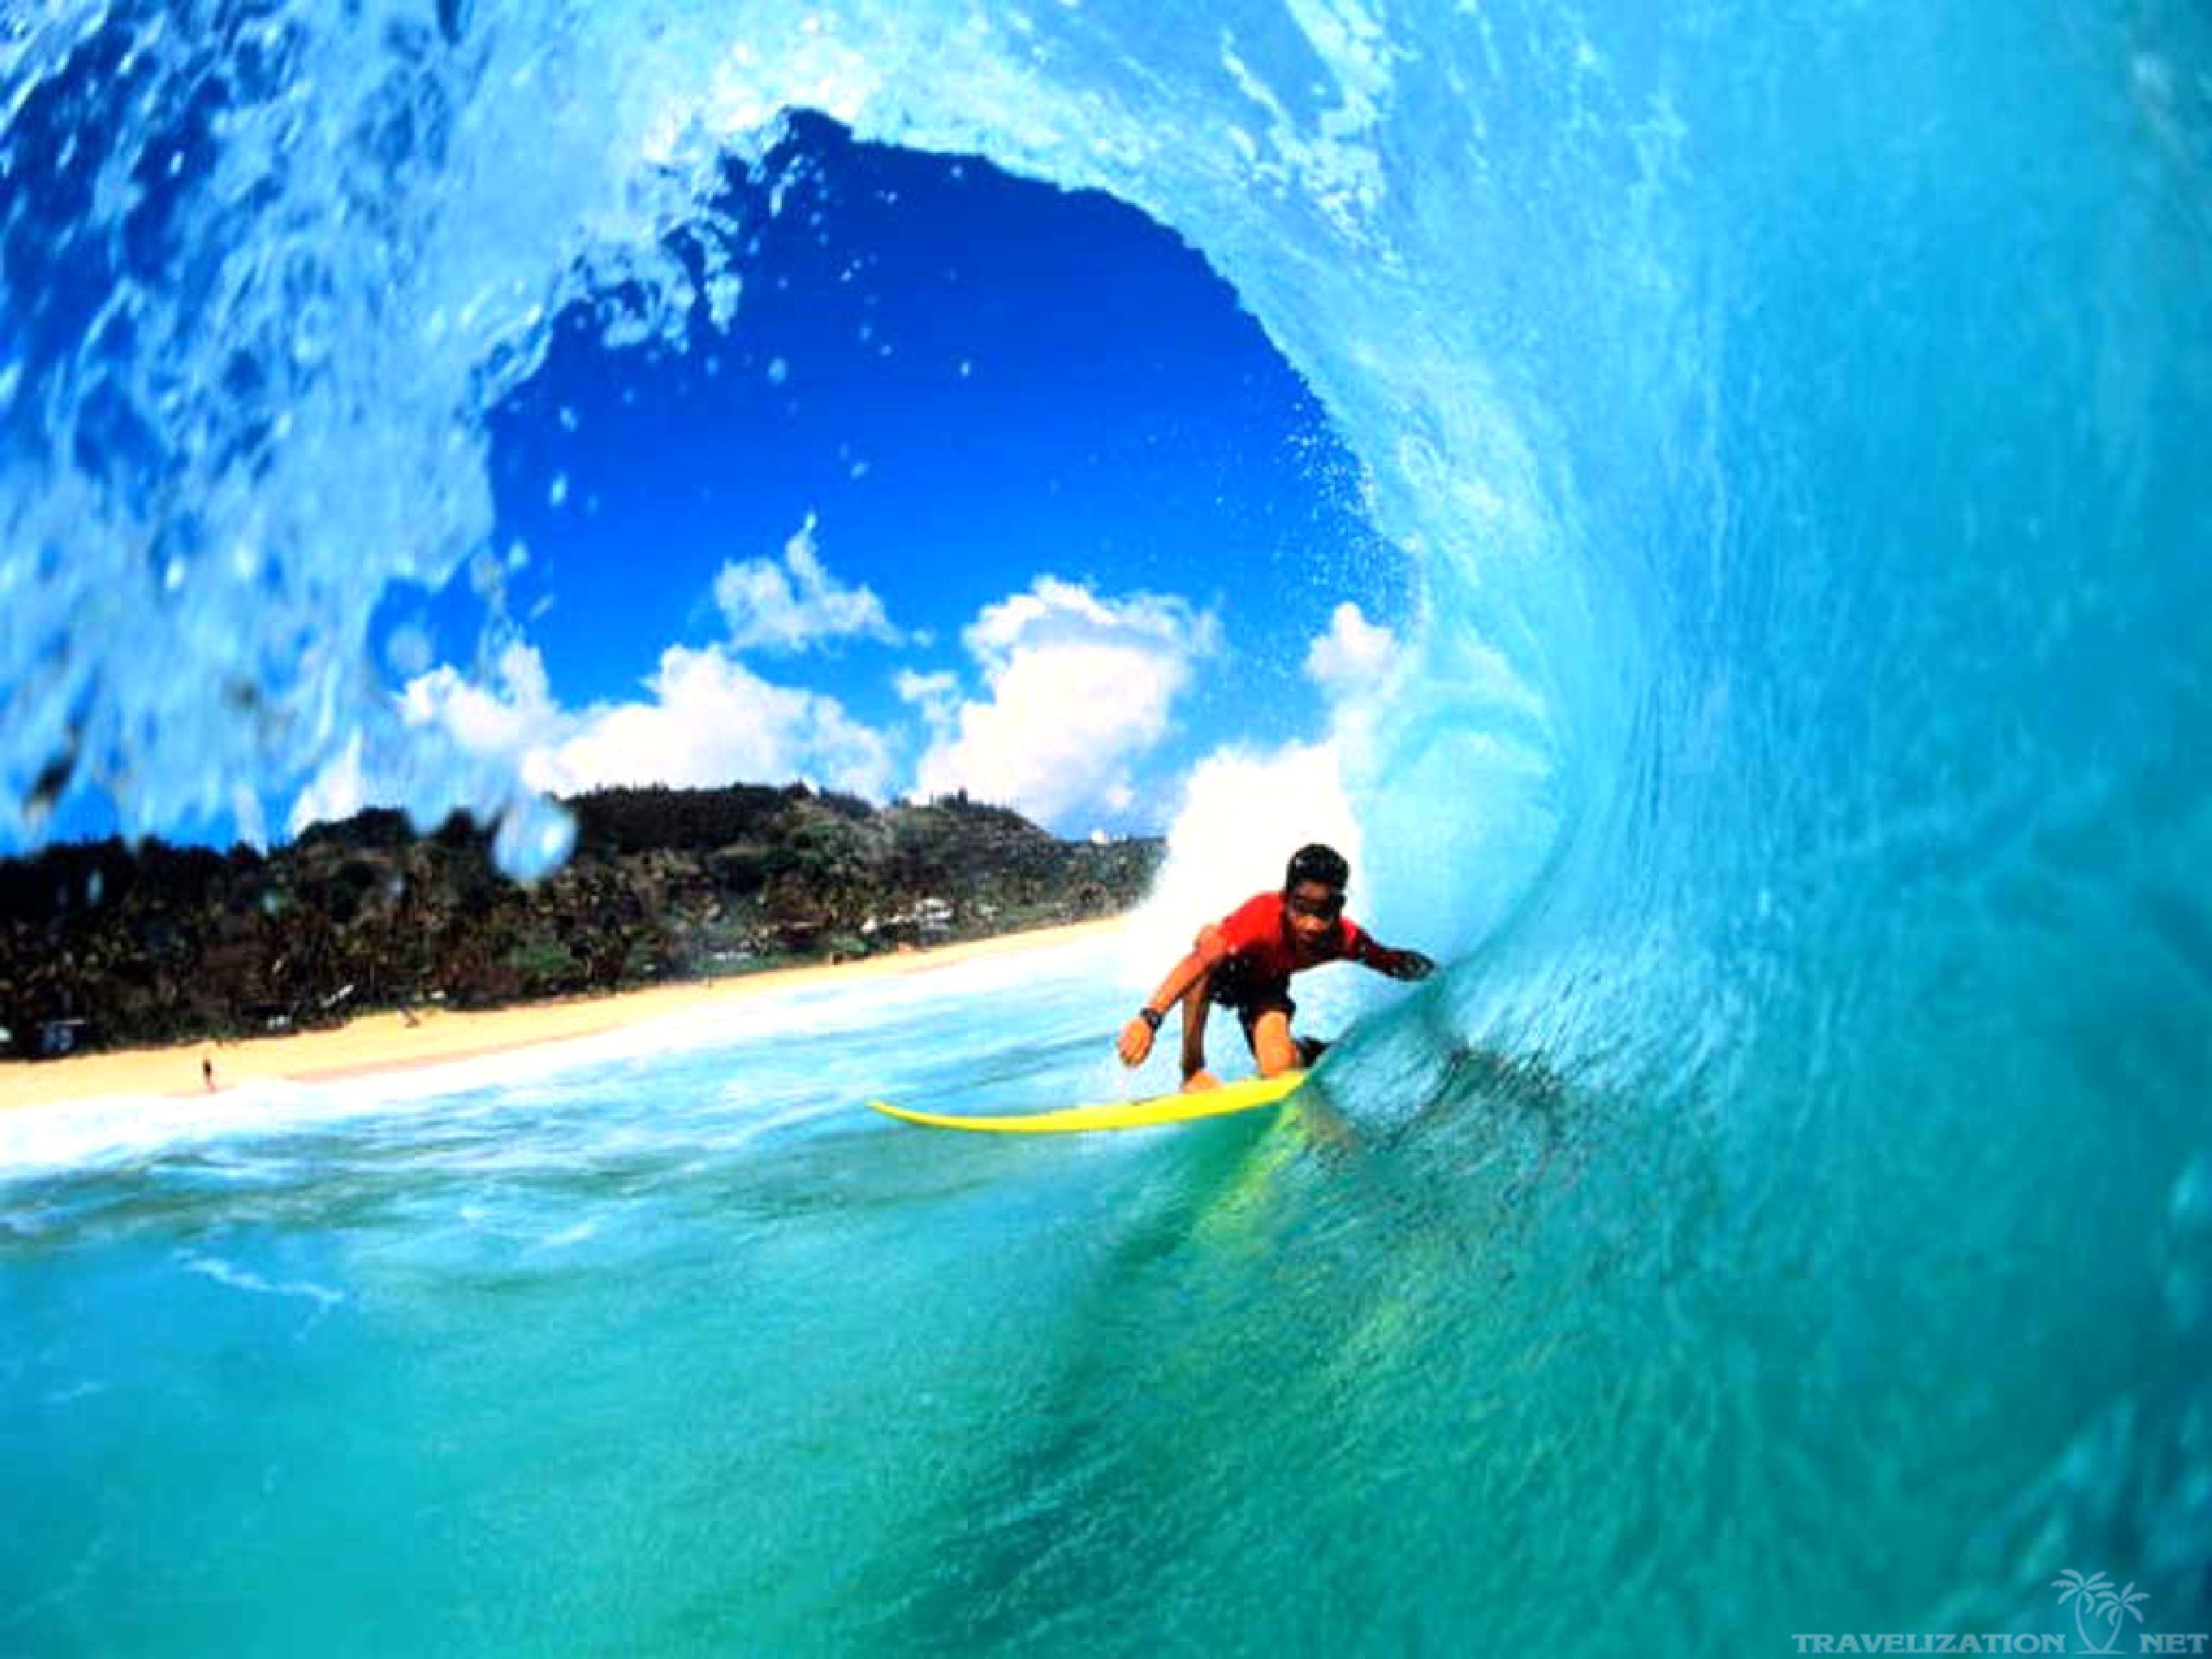 Cool Surfing Wallpapers walljpegcom 2560x1920